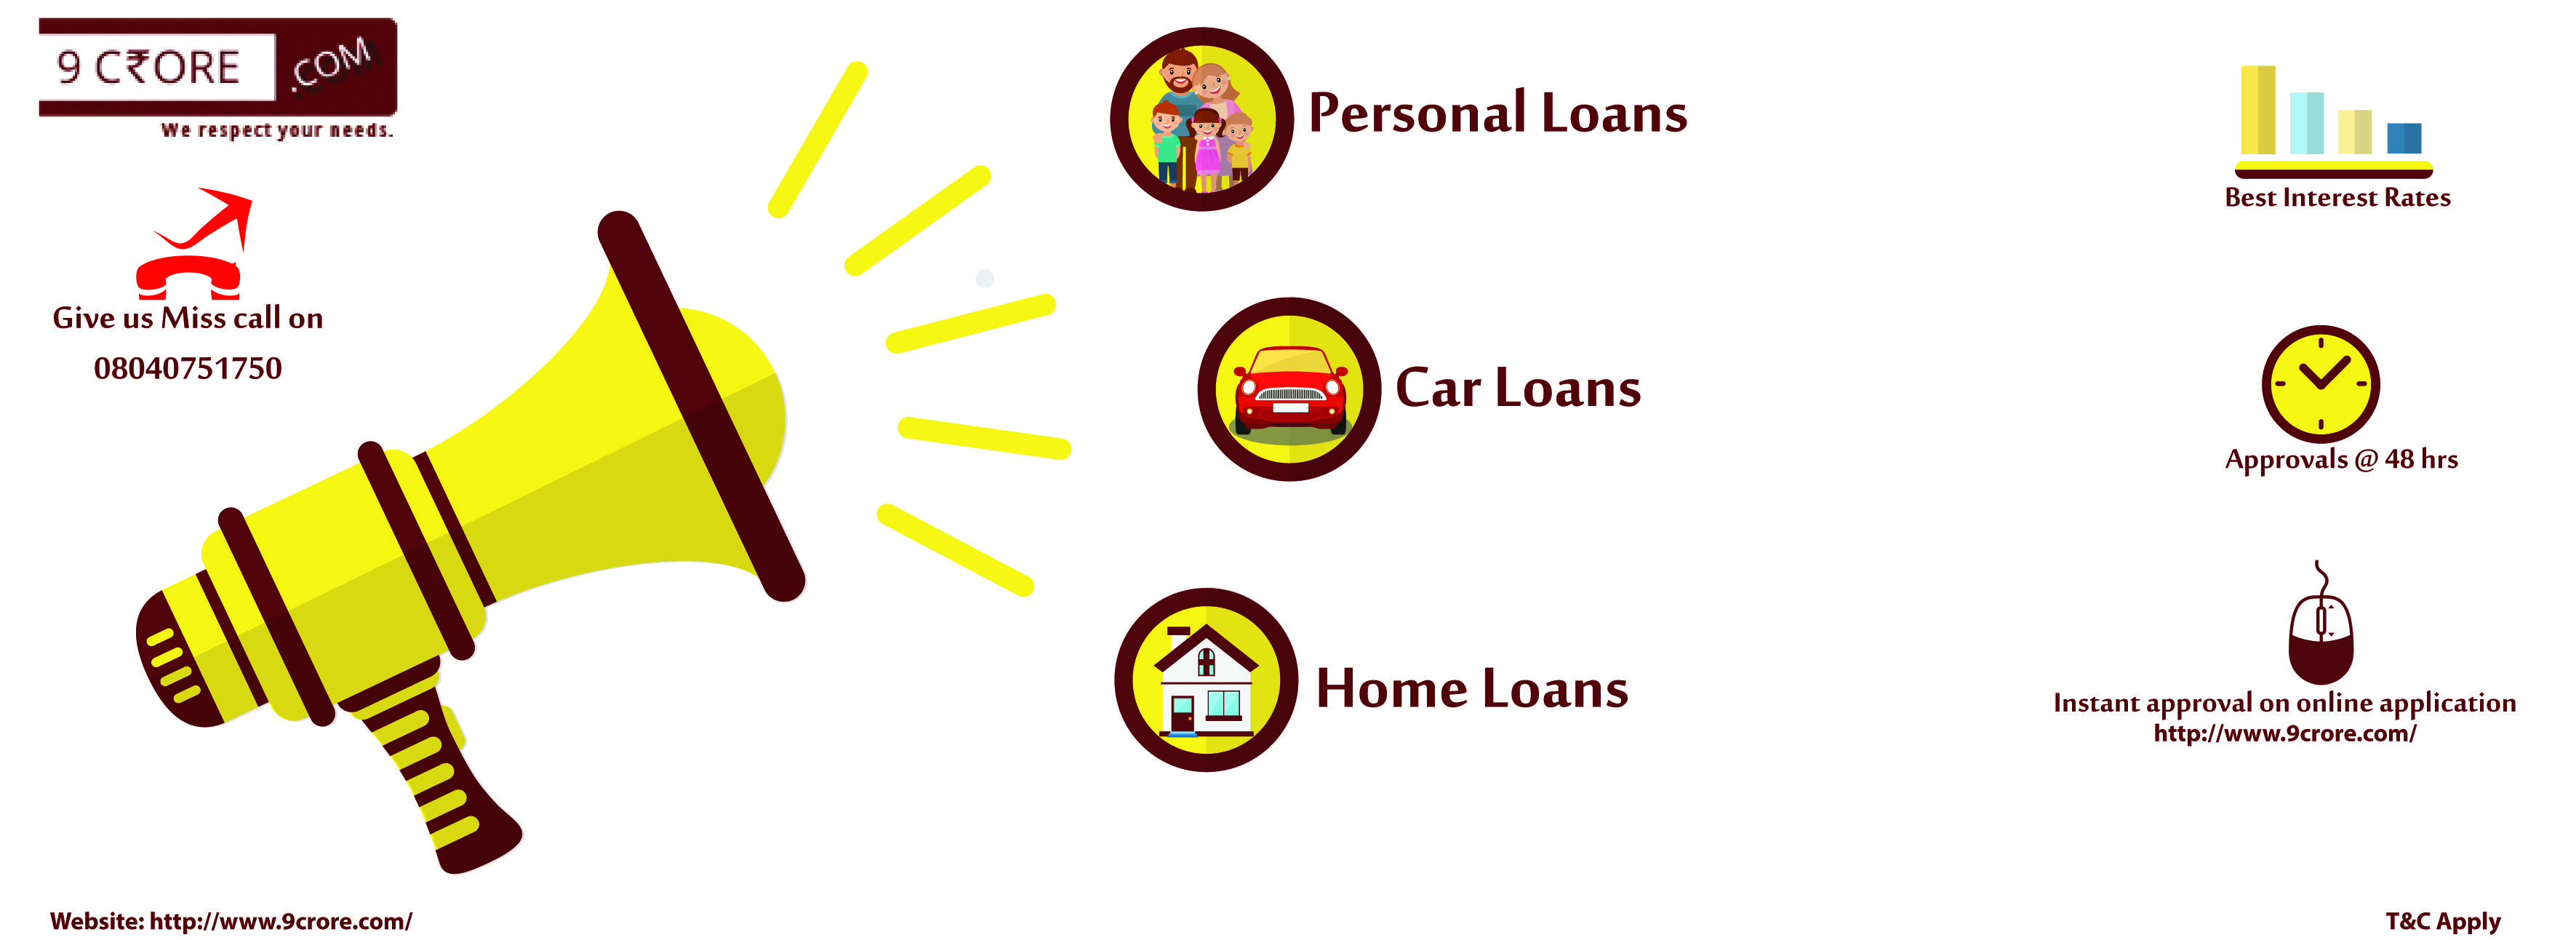 9crore Com Is Very Excited To Announce About Financial Product And Services Offering In Bangalore With Lowest Interest Rate Personal Loans Car Loans Home Loans